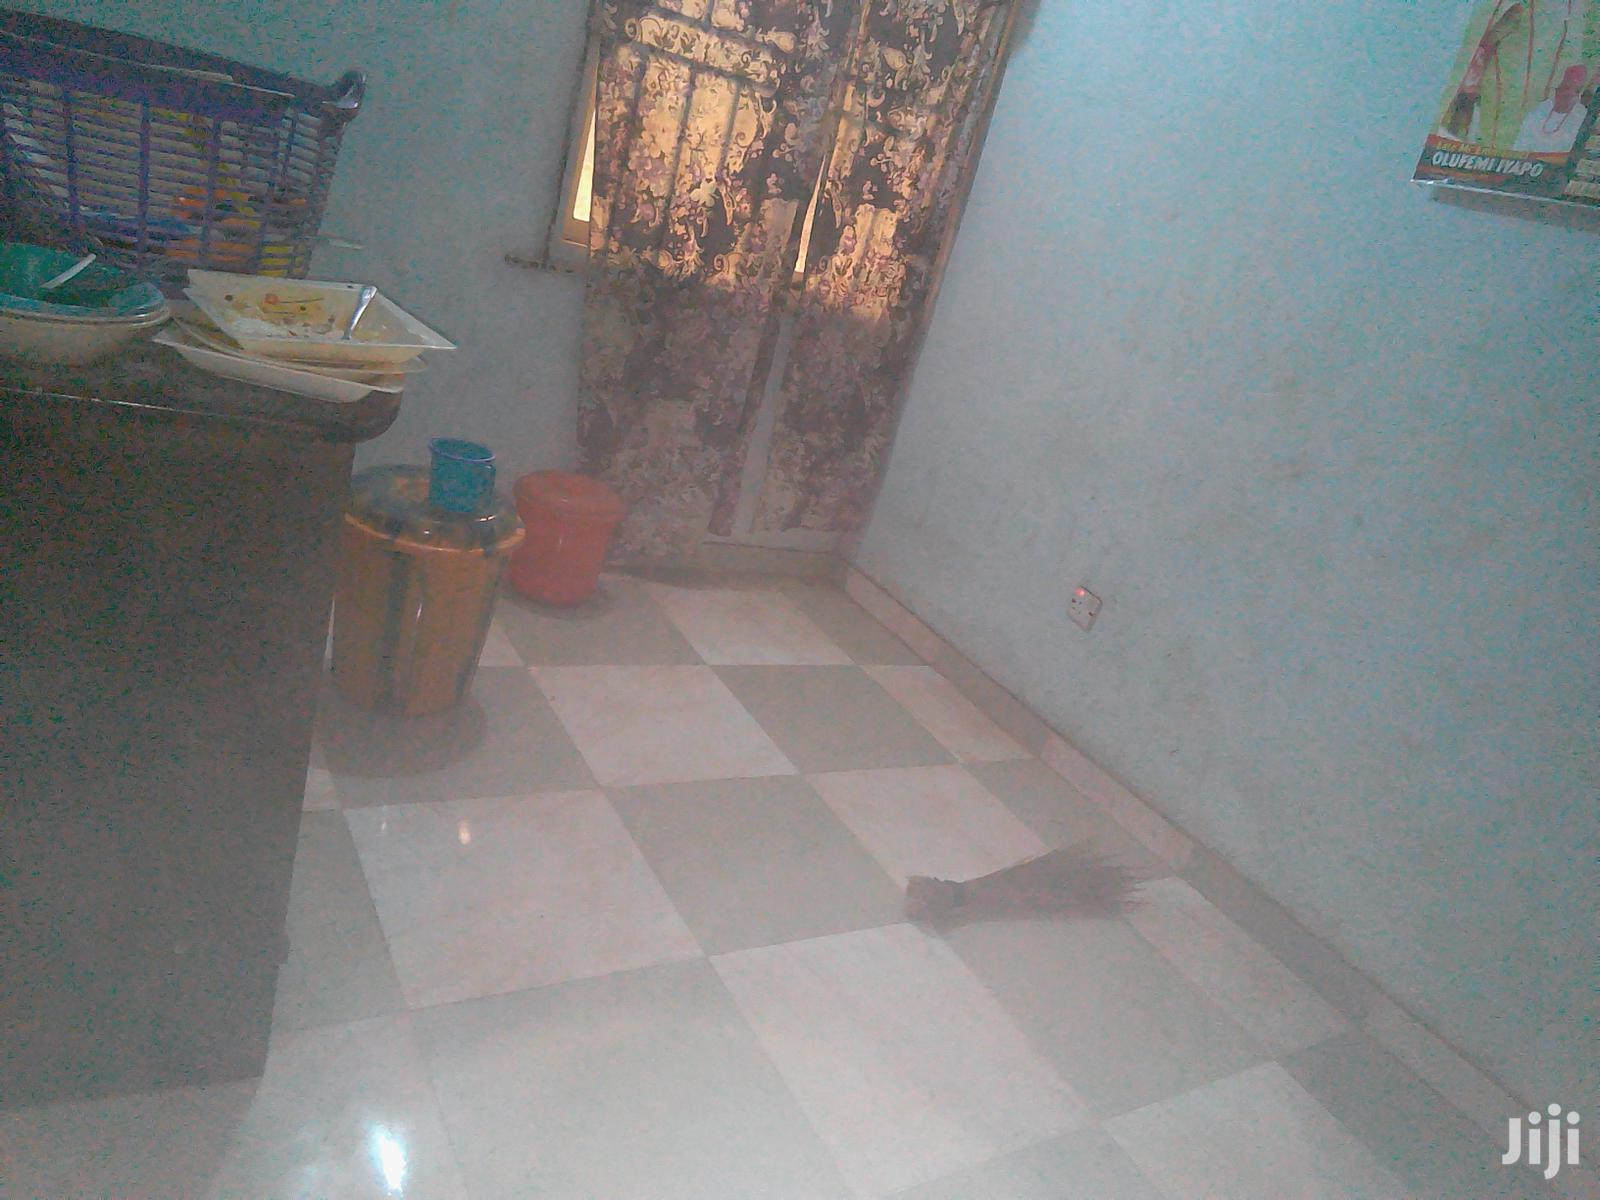 Standard 4 Bedroom Bungalow For Sale At Isokan Estate Ayobo. | Houses & Apartments For Sale for sale in Ipaja, Lagos State, Nigeria